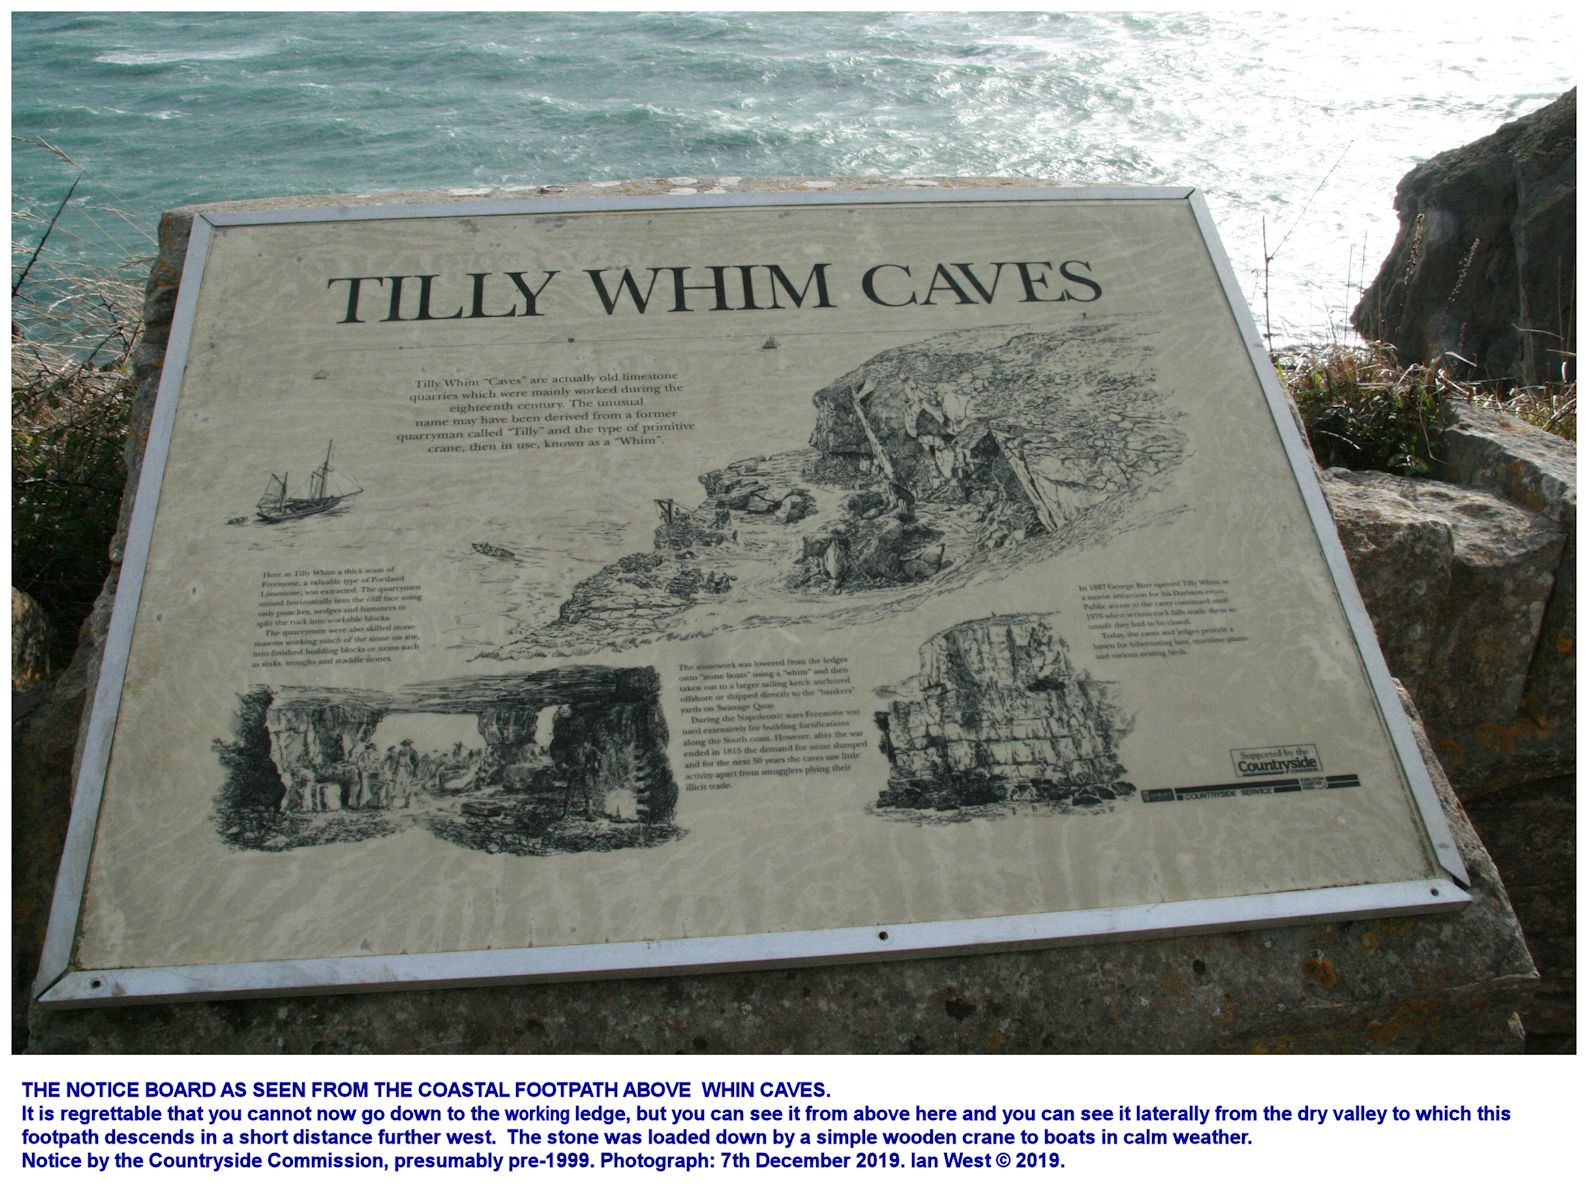 An informative notice board on the cliff-top path above the Tilly Whim Caves, quarry ledge, west of Durlston Head, Isle of Purbeck, Dorset, as in December 2019, Ian West